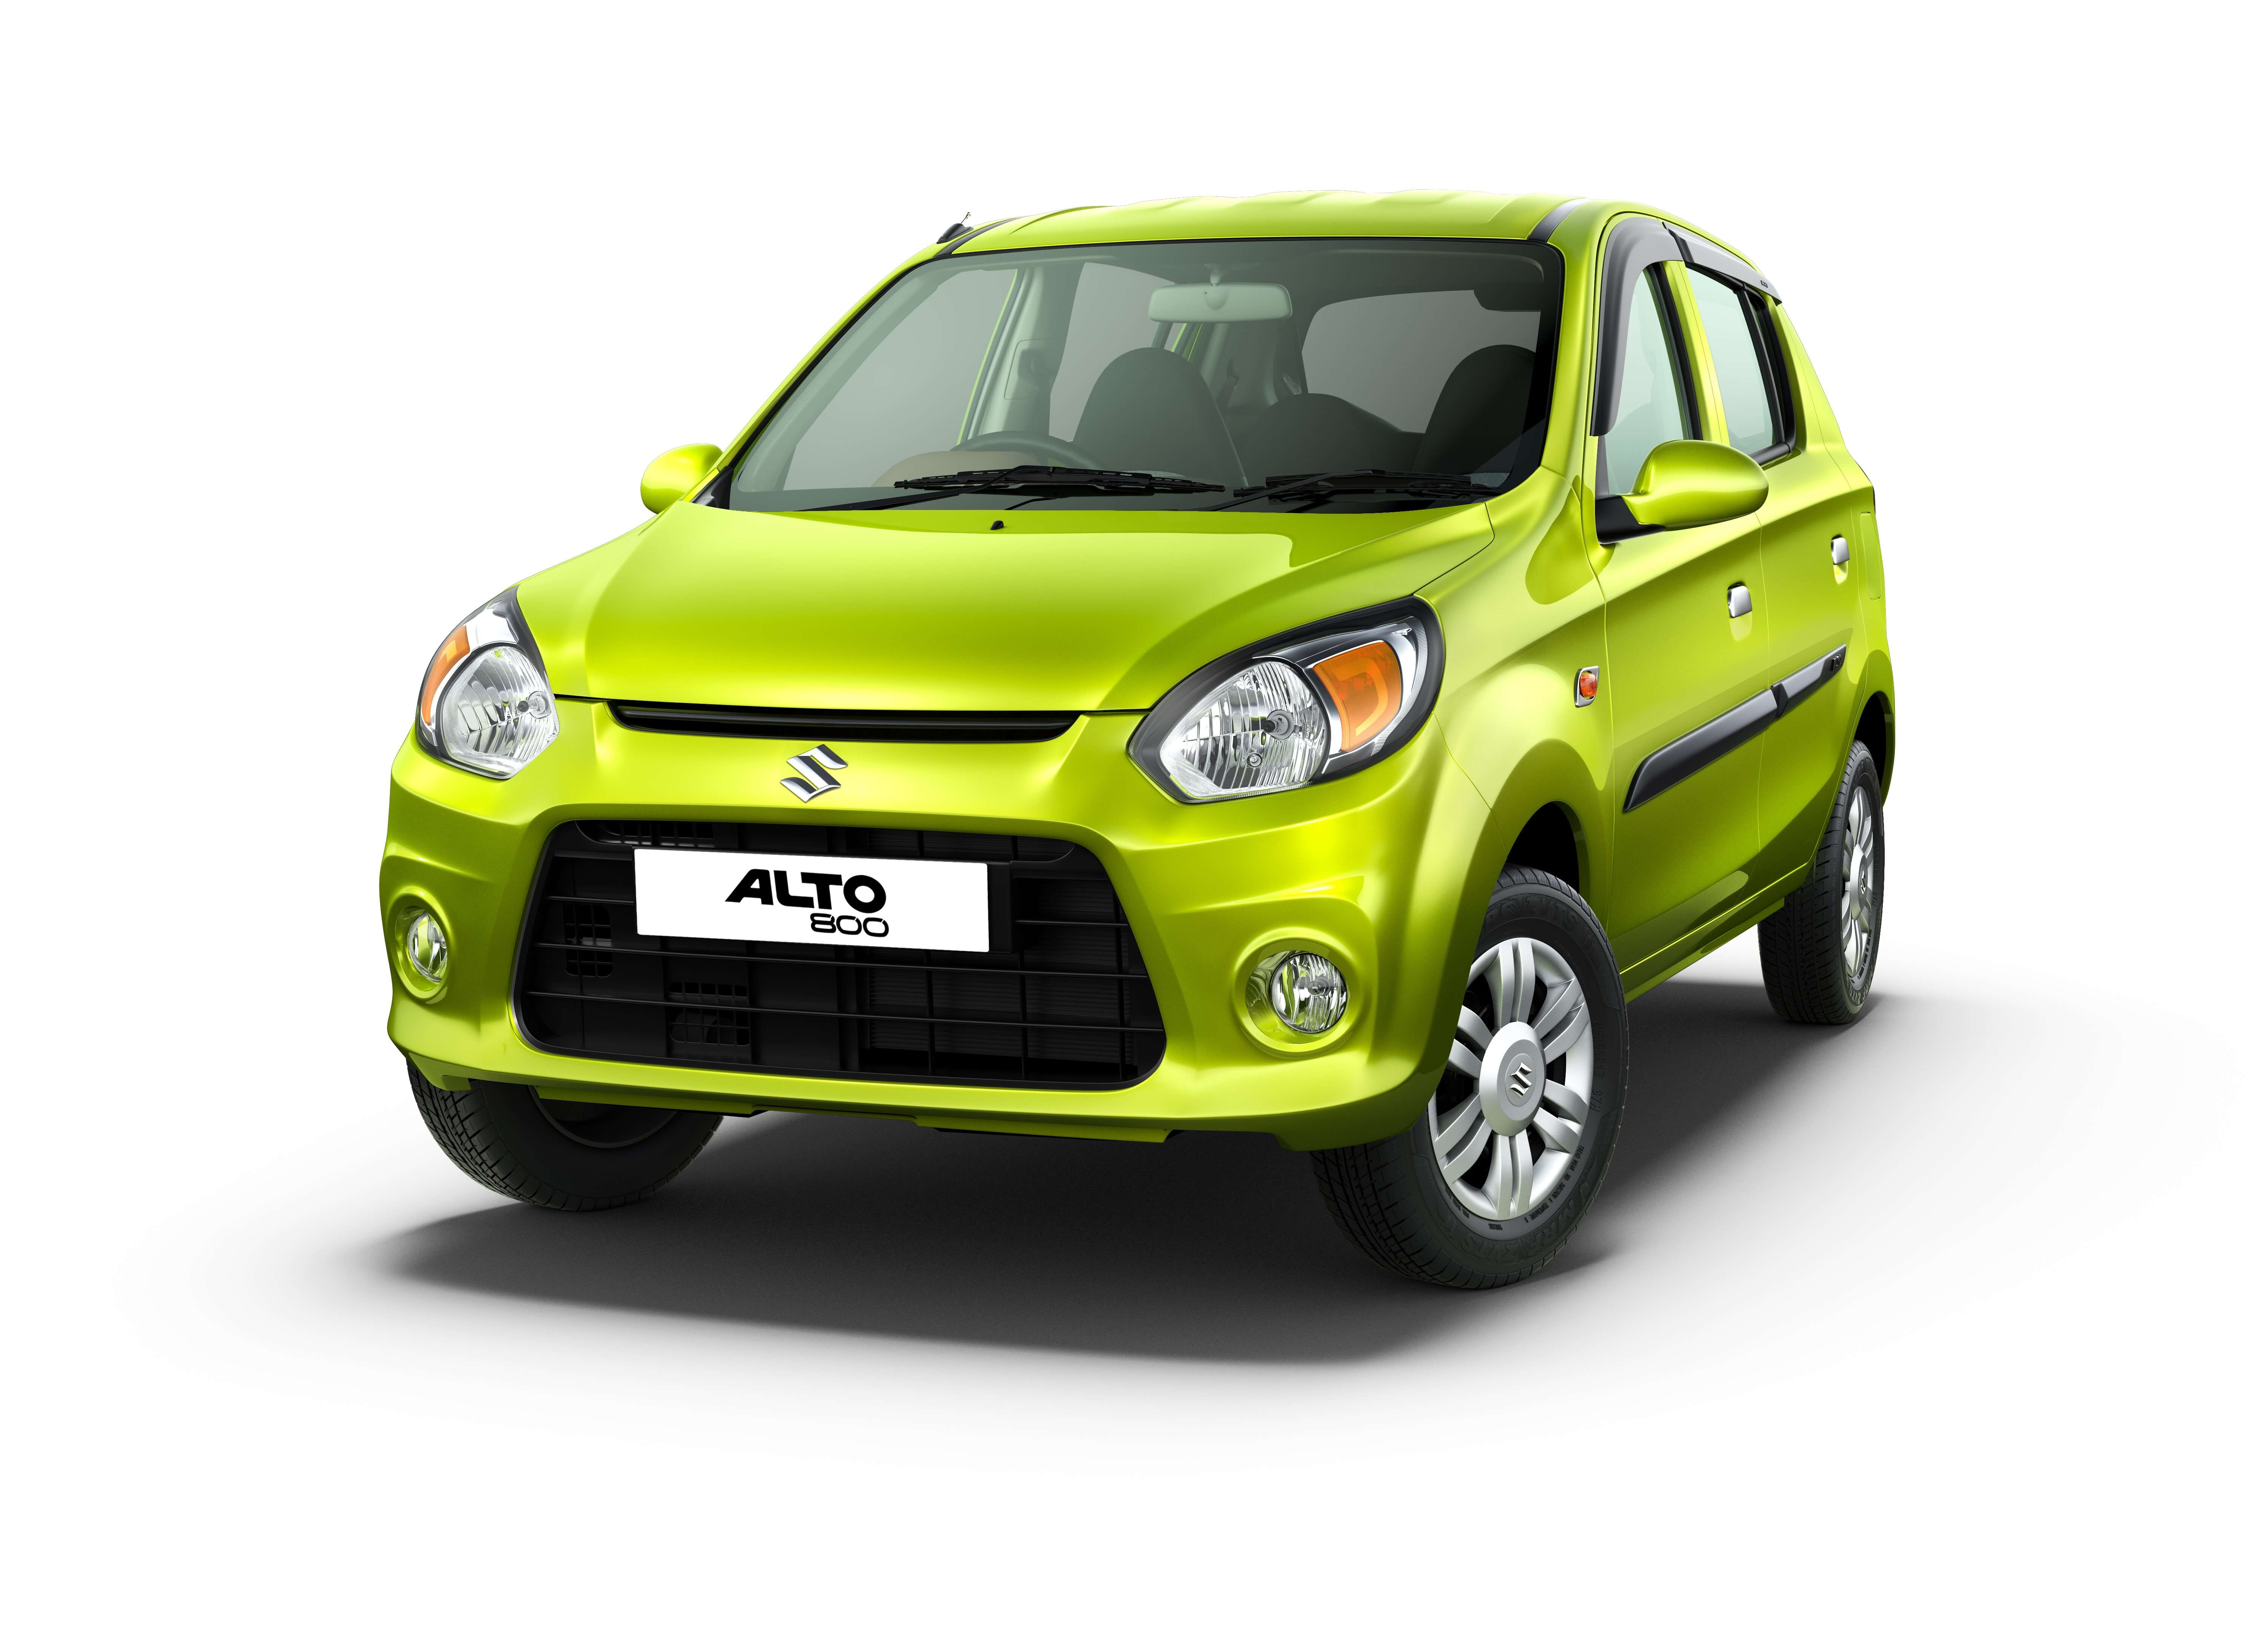 Suzki Alto 800 Accessorized Unit